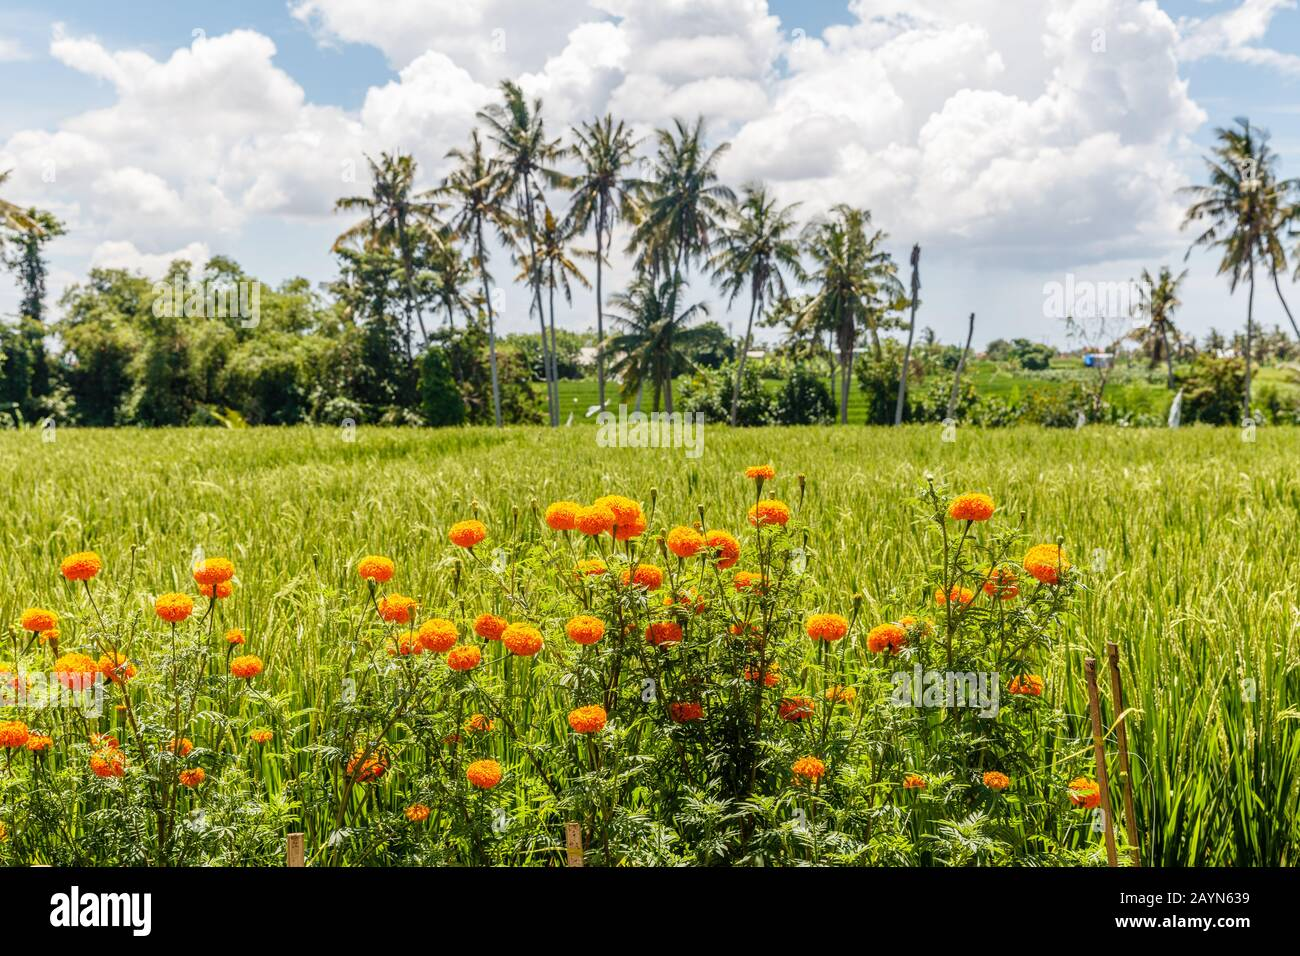 Rice field with blooming marigolds. Palm trees on the background. Rural landscape. Bali Island, Indonesia Stock Photo